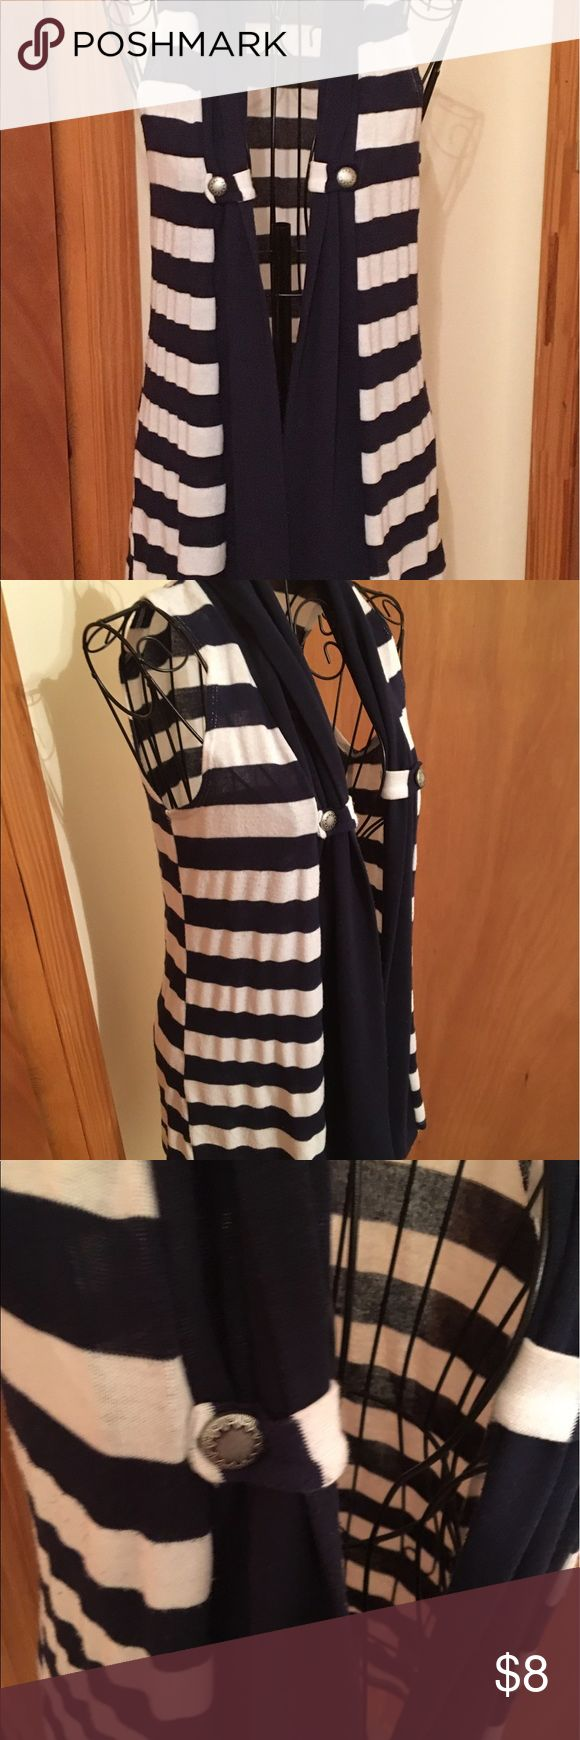 Rue 21 dark blue and white vest😄❤ In good preowned condition size medium 😍🌷 Rue 21 Jackets & Coats Vests